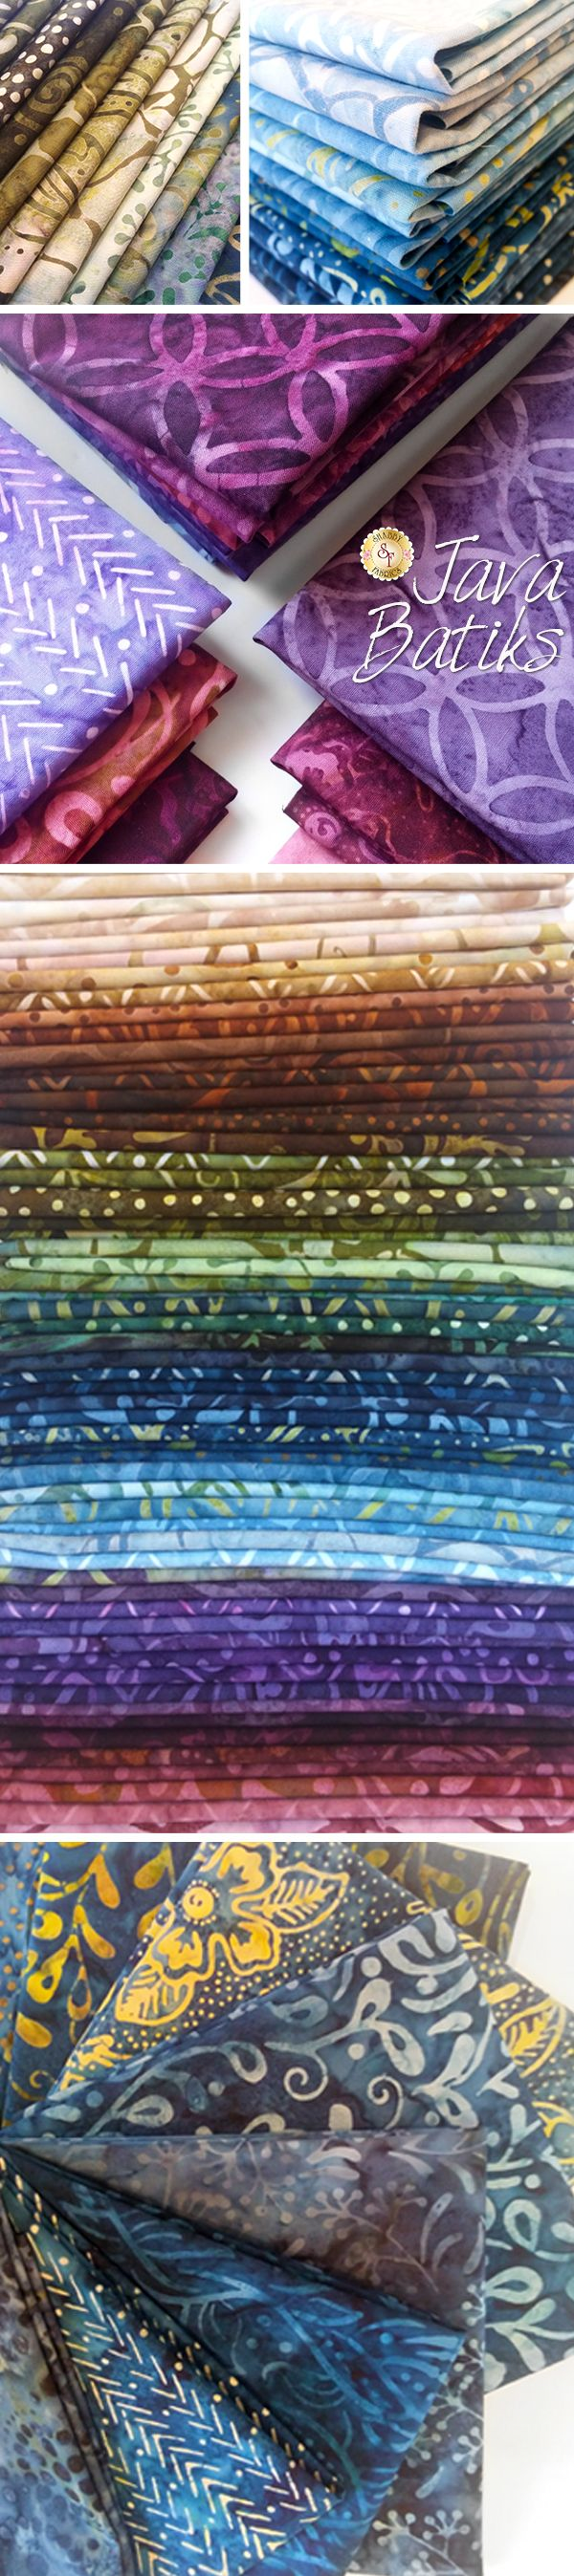 Java Batiks by Maywood Studio is a beautiful batik collection available at Shabby Fabrics!